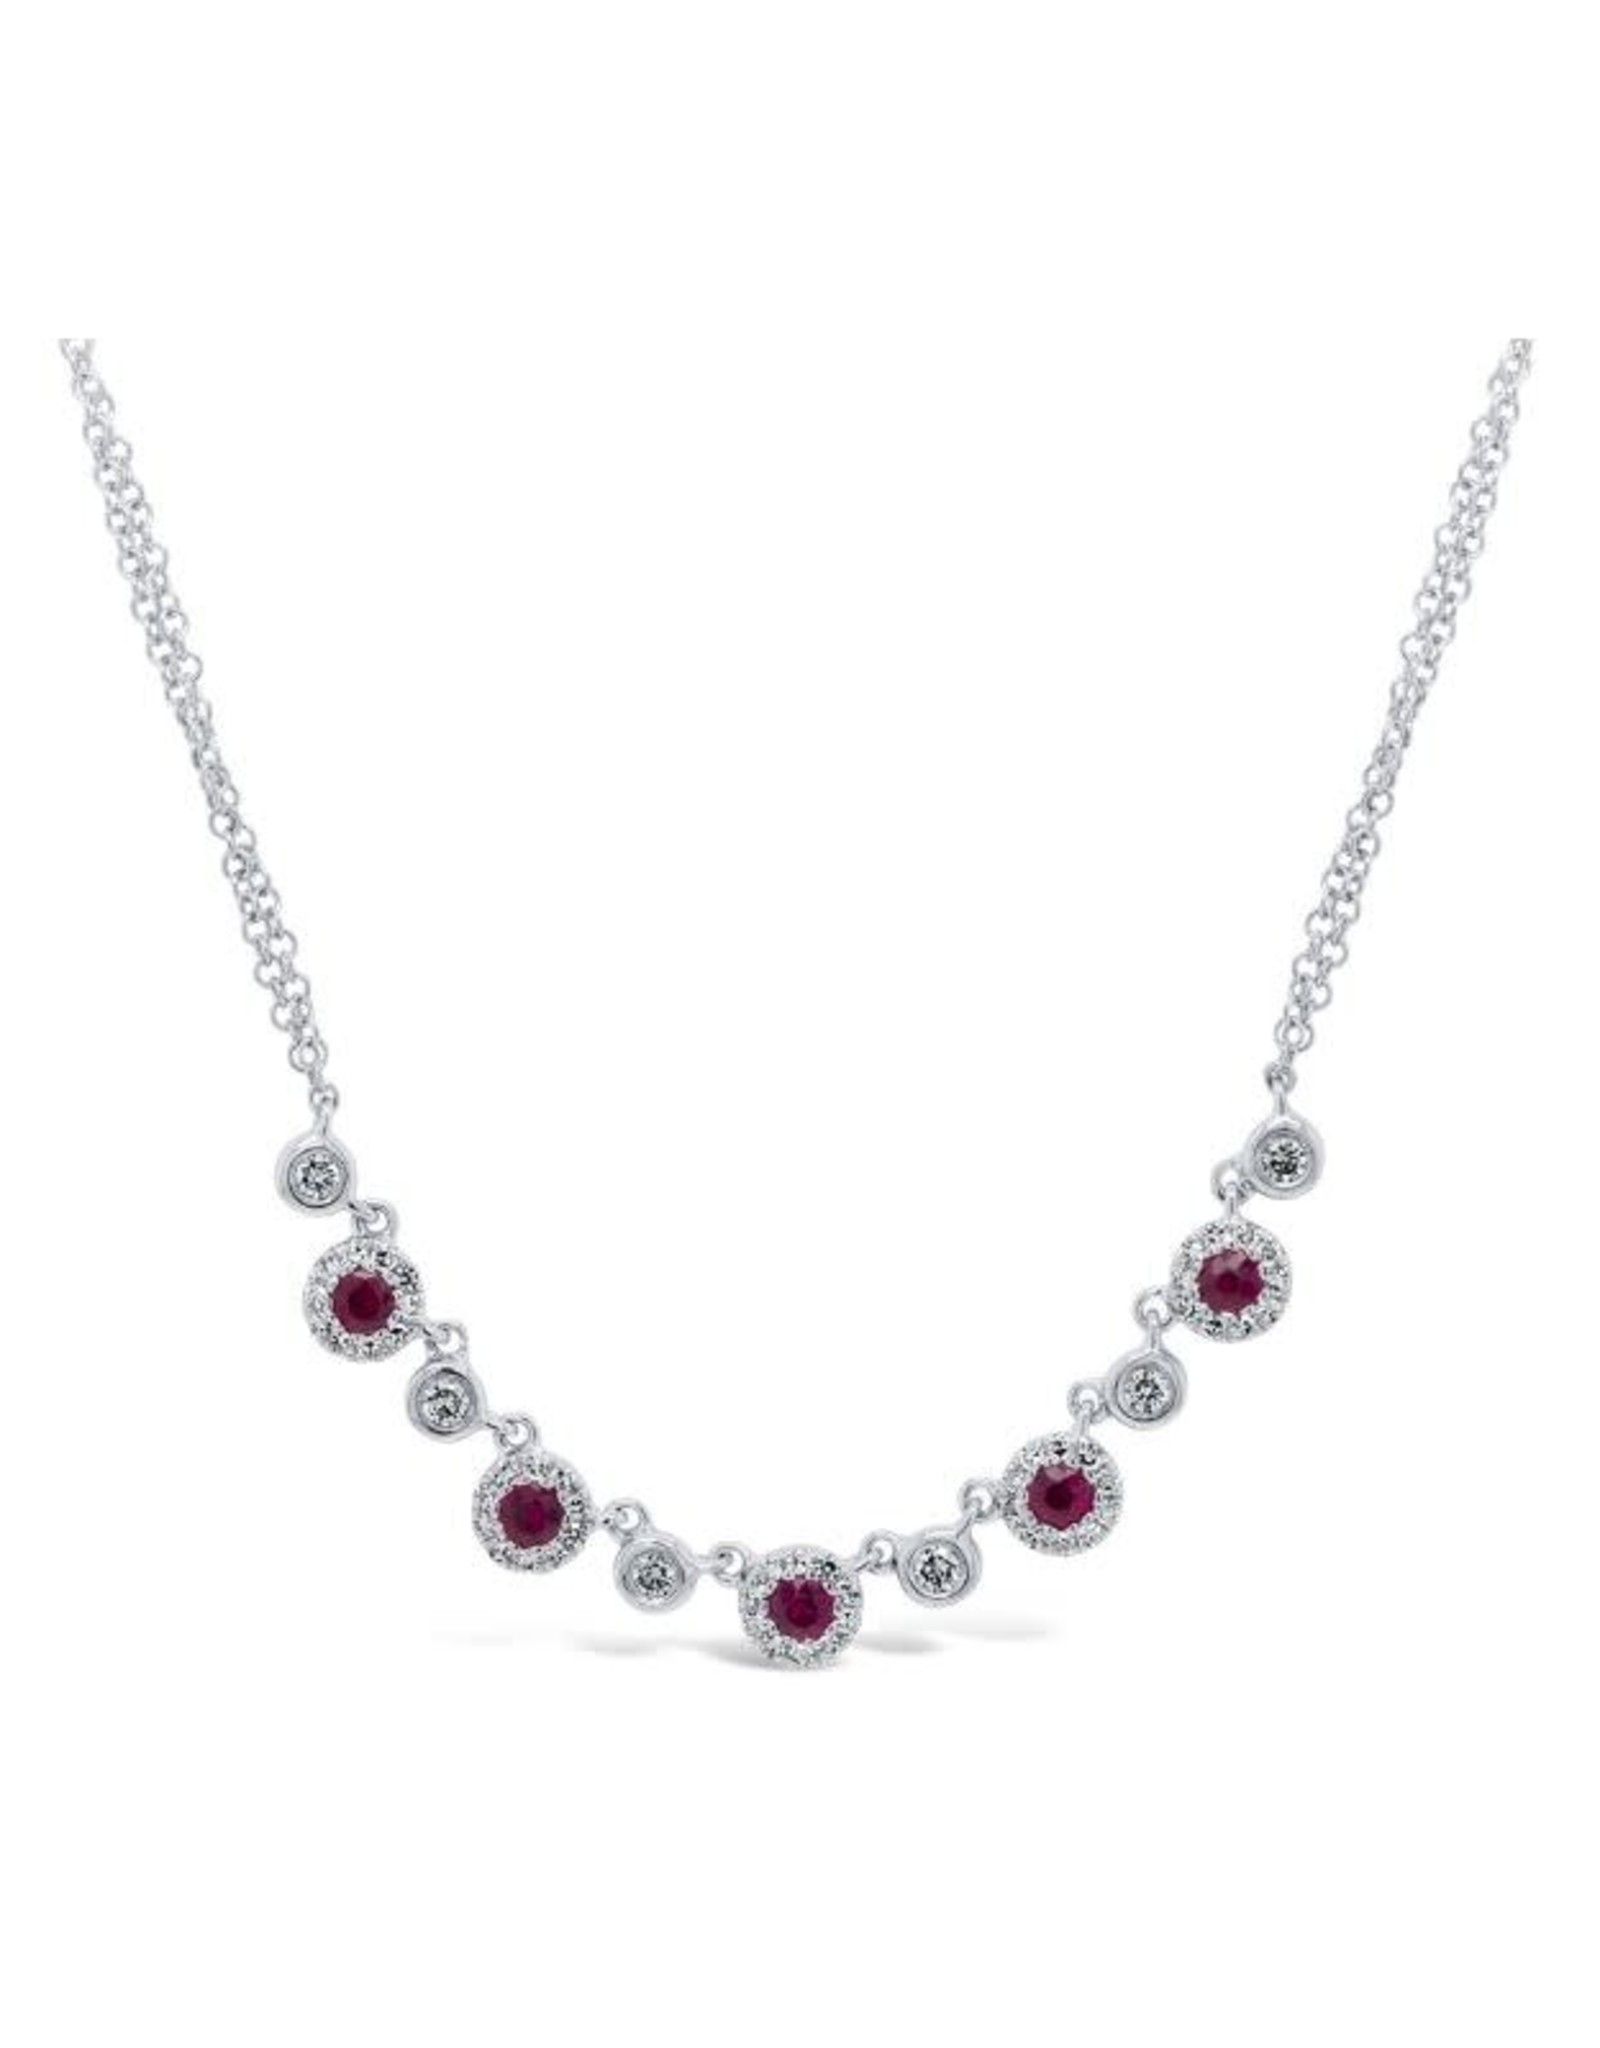 14K White Gold Ruby and Diamond Necklace, R: 0.36ct, D: 0.26ct